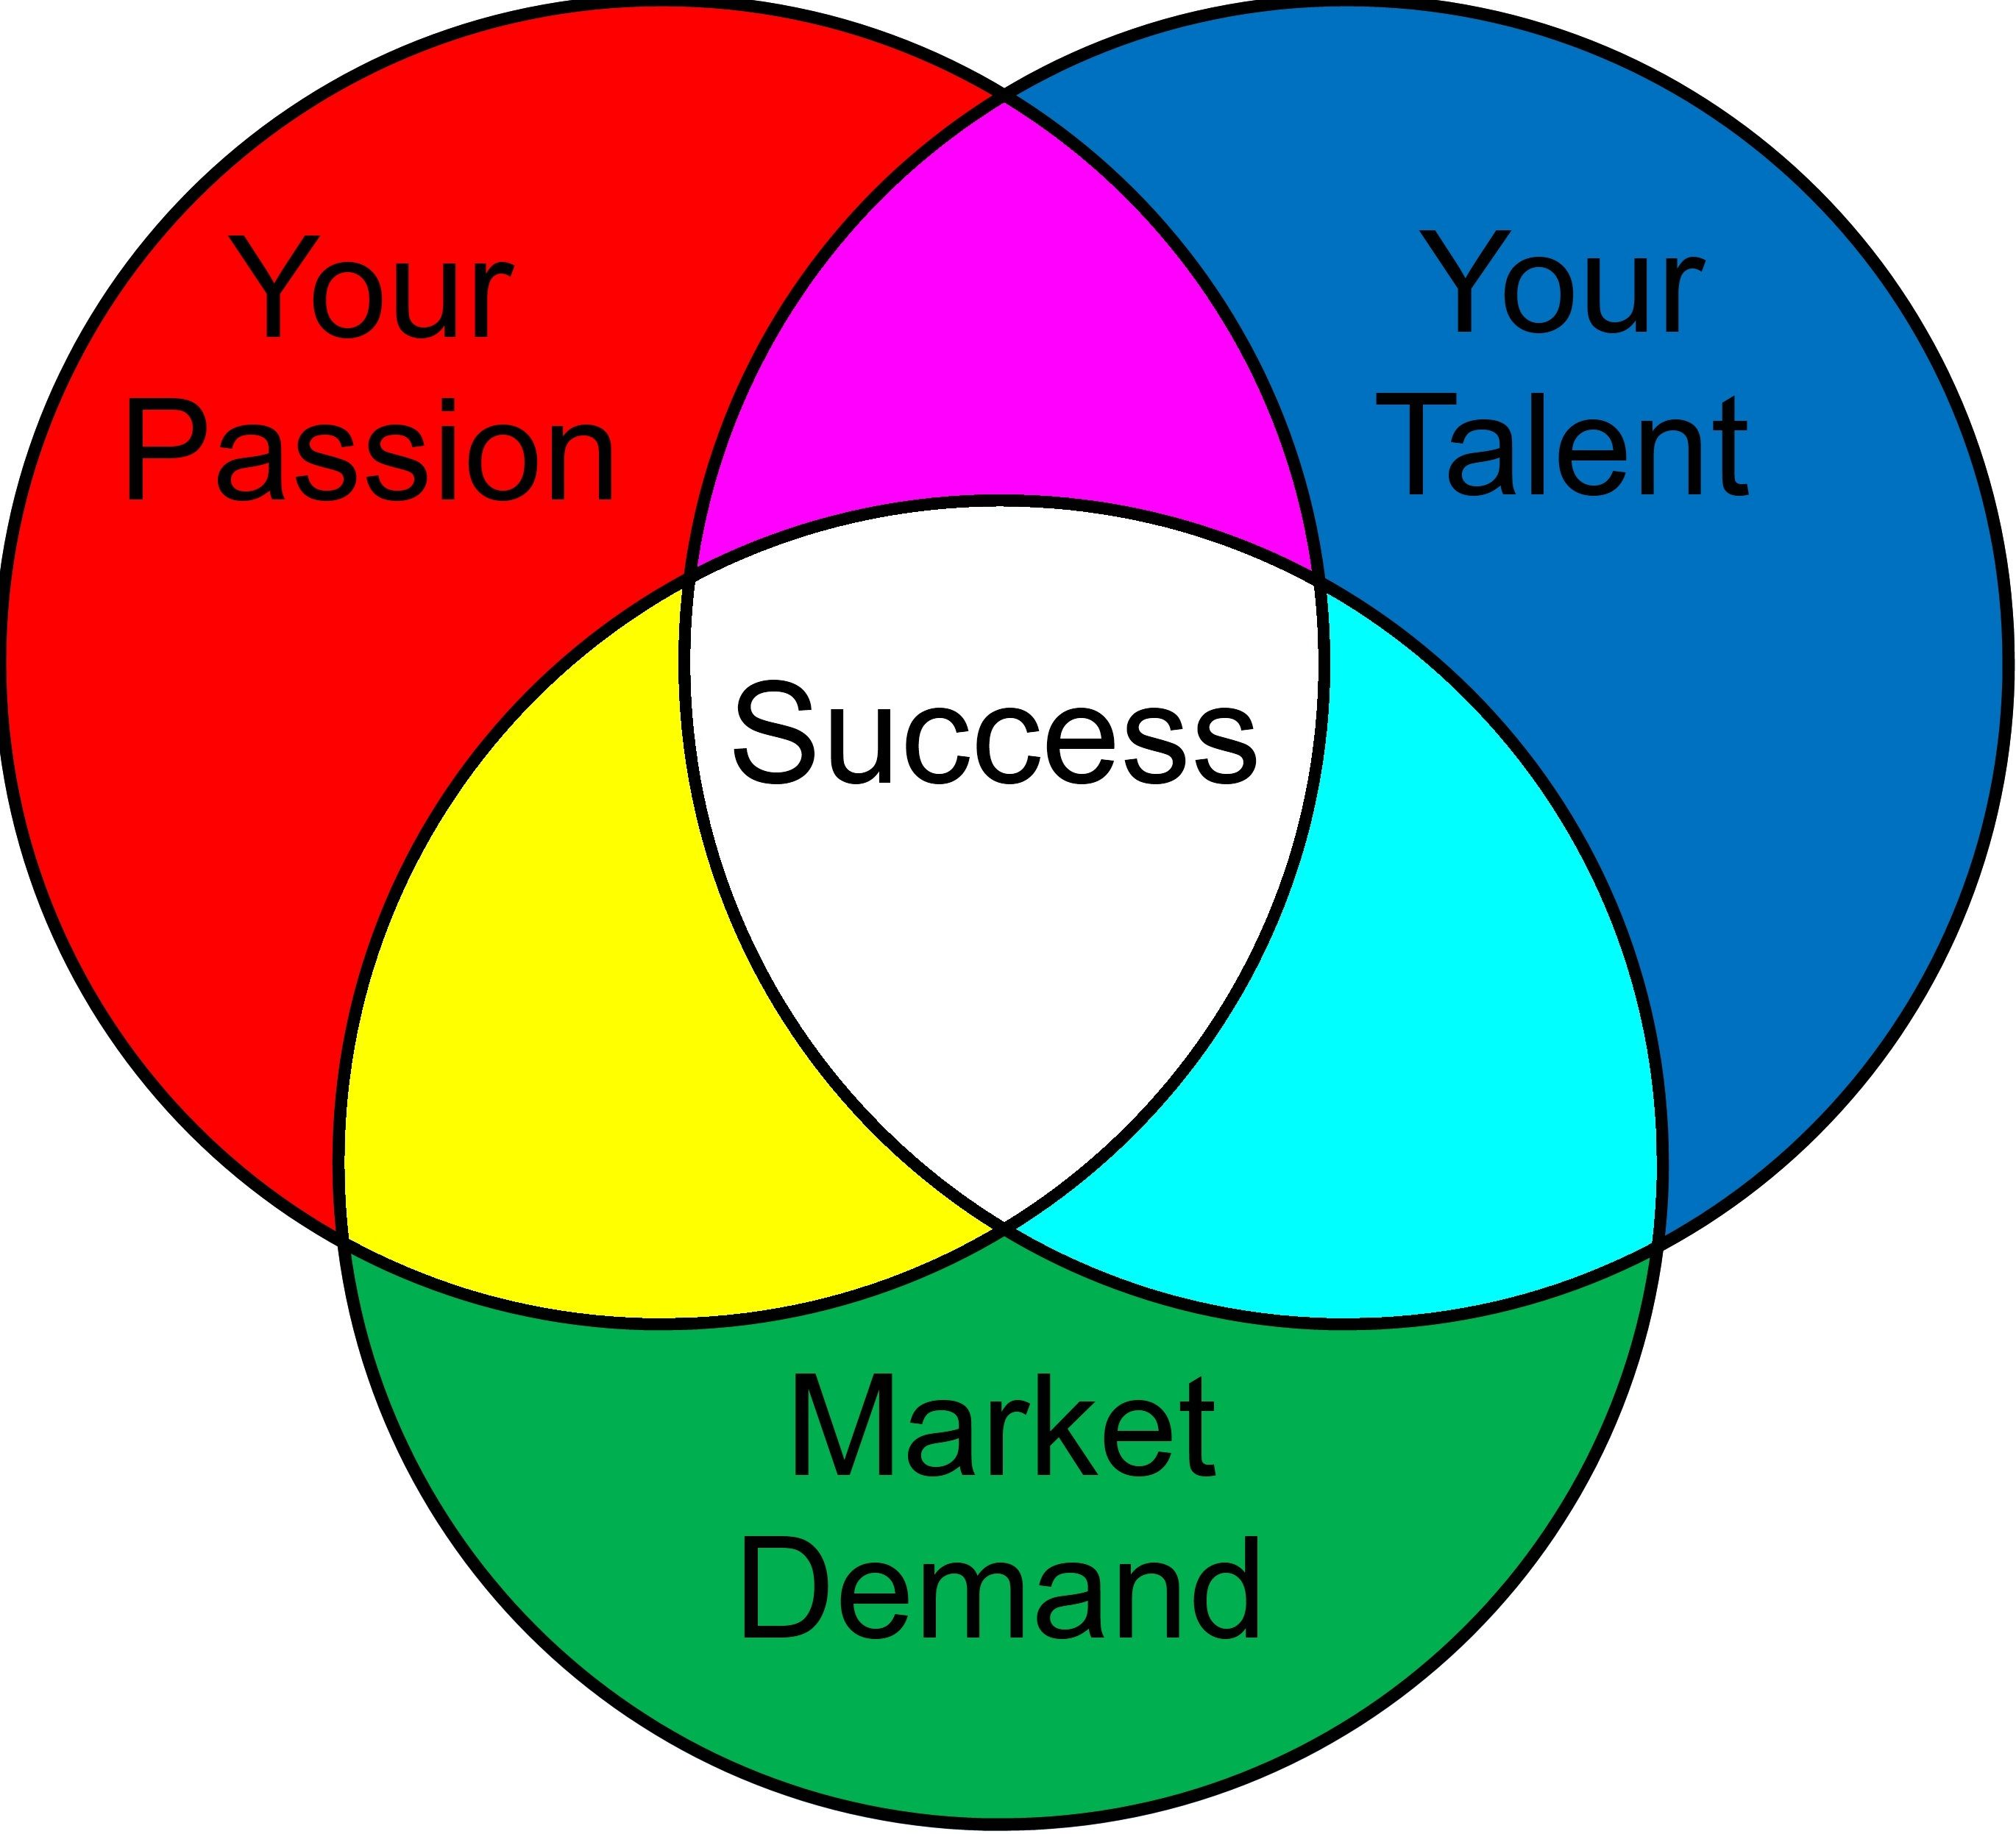 Passion success demand good at google search quotes good use of venn diagram on passion talent and market demand pooptronica Gallery